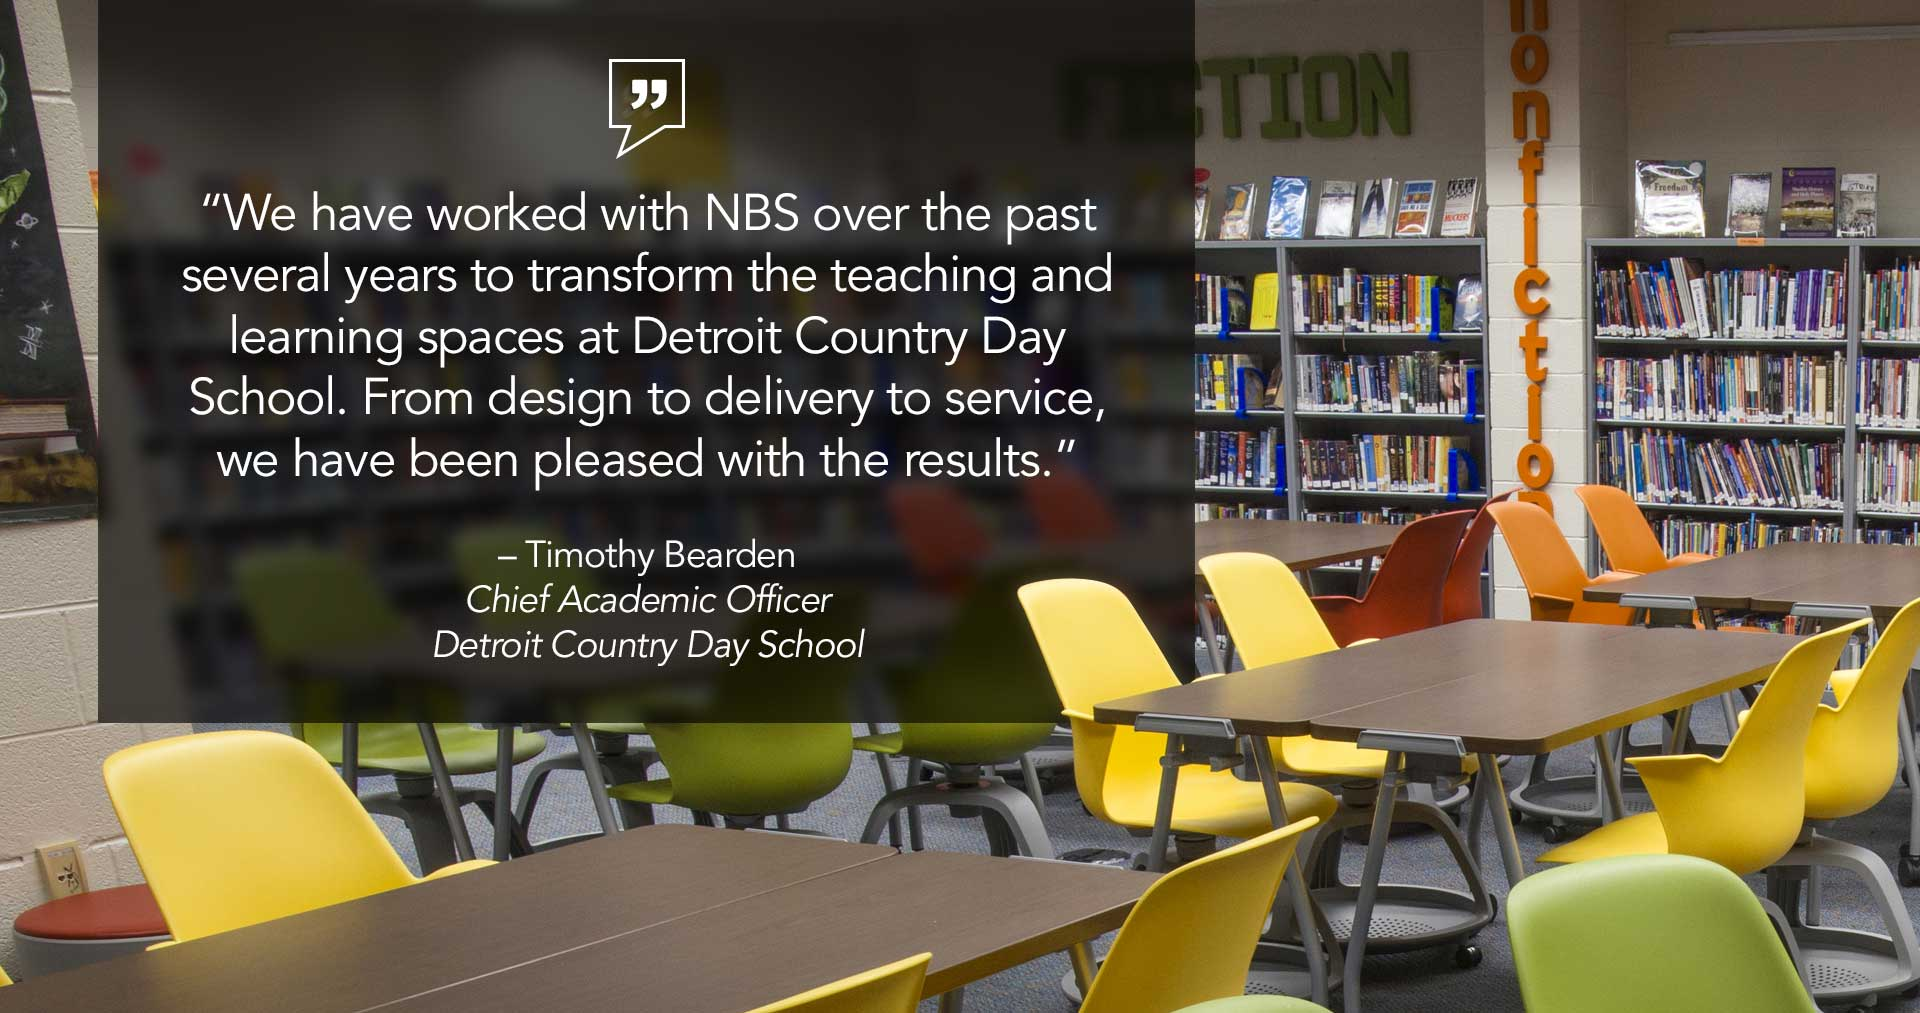 NBS-Quotes-Detroit_Country_Day